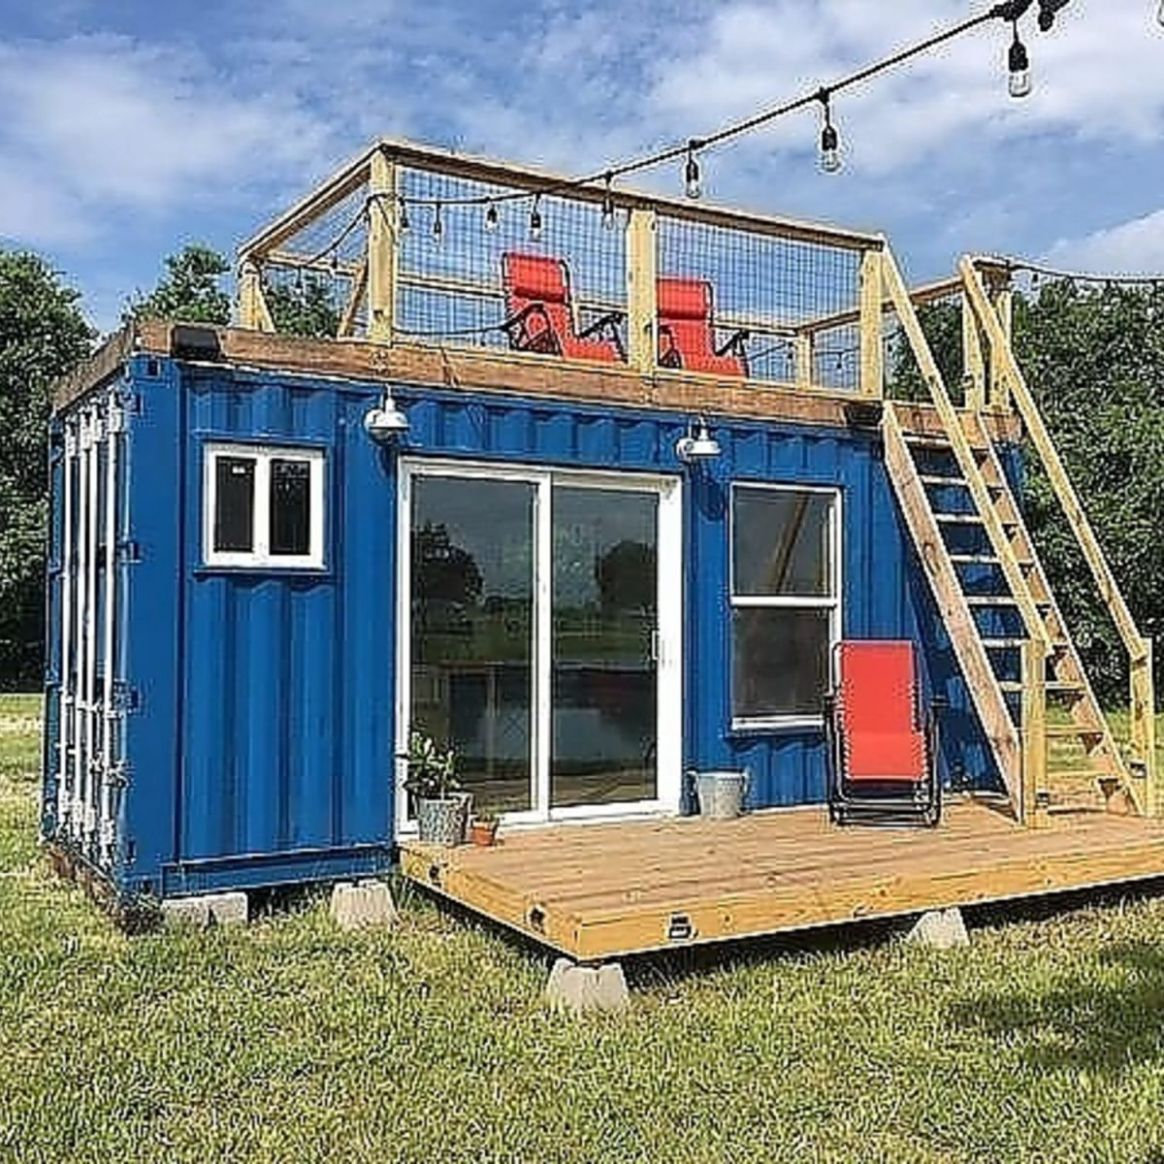 12' Rustic Retreat Shipping Container - Tiny House for Sale in Houston,  Texas - Tiny House Listings